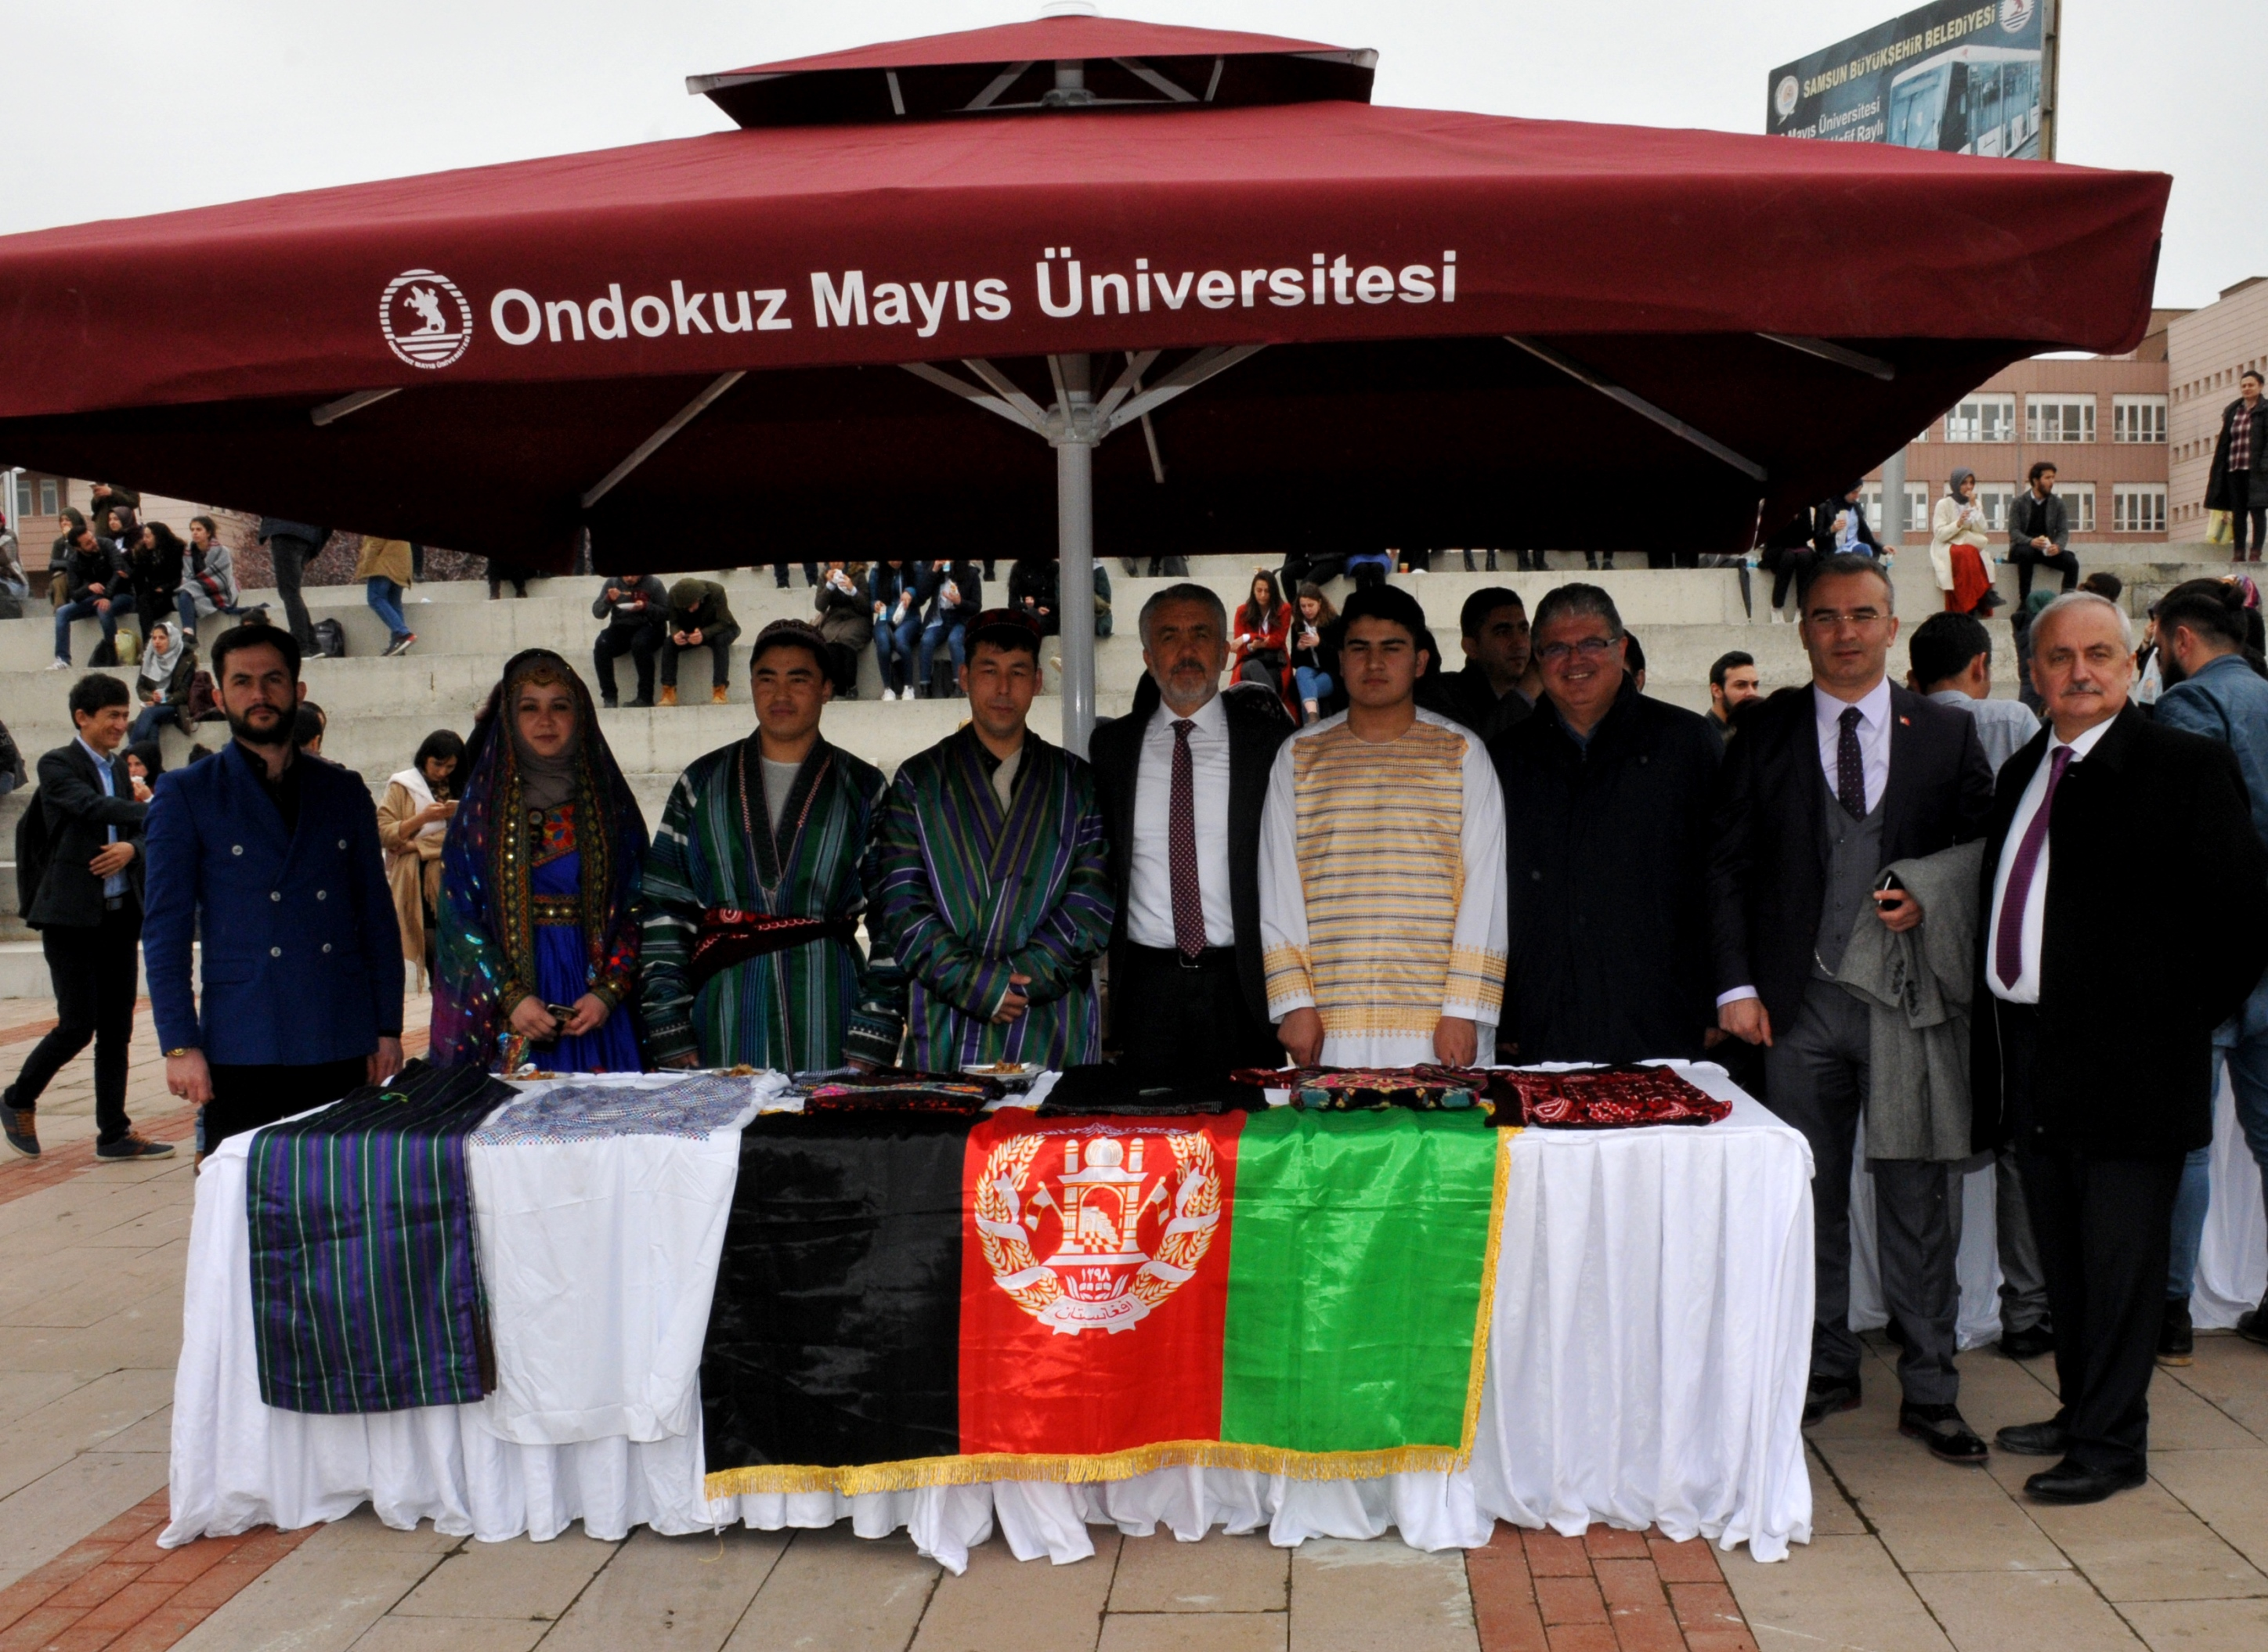 http://www.omu.edu.tr/sites/default/files/files/omu_family_enthusiastically_celebrated_newroz/dsc_0349.jpg